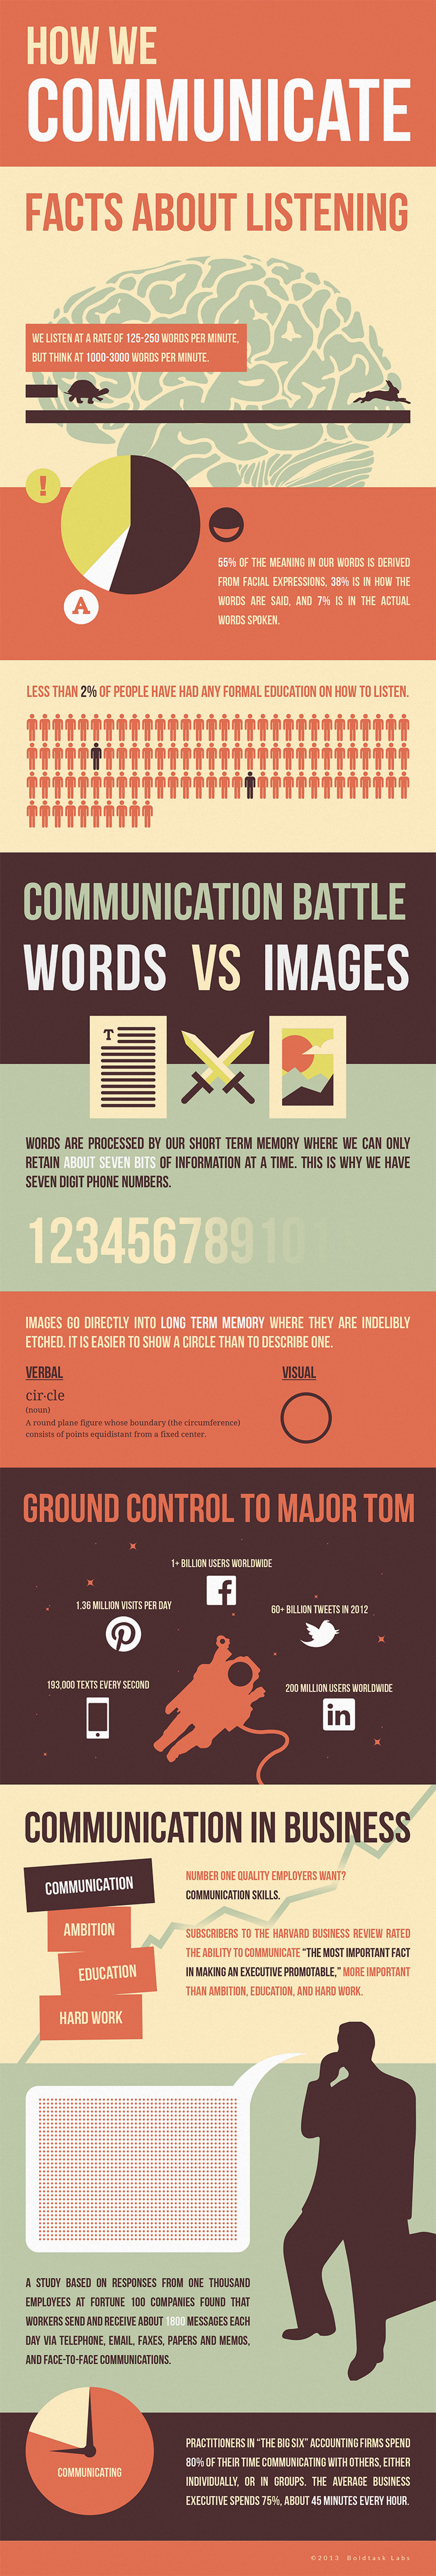 SY Infographic How we communicate FINAL